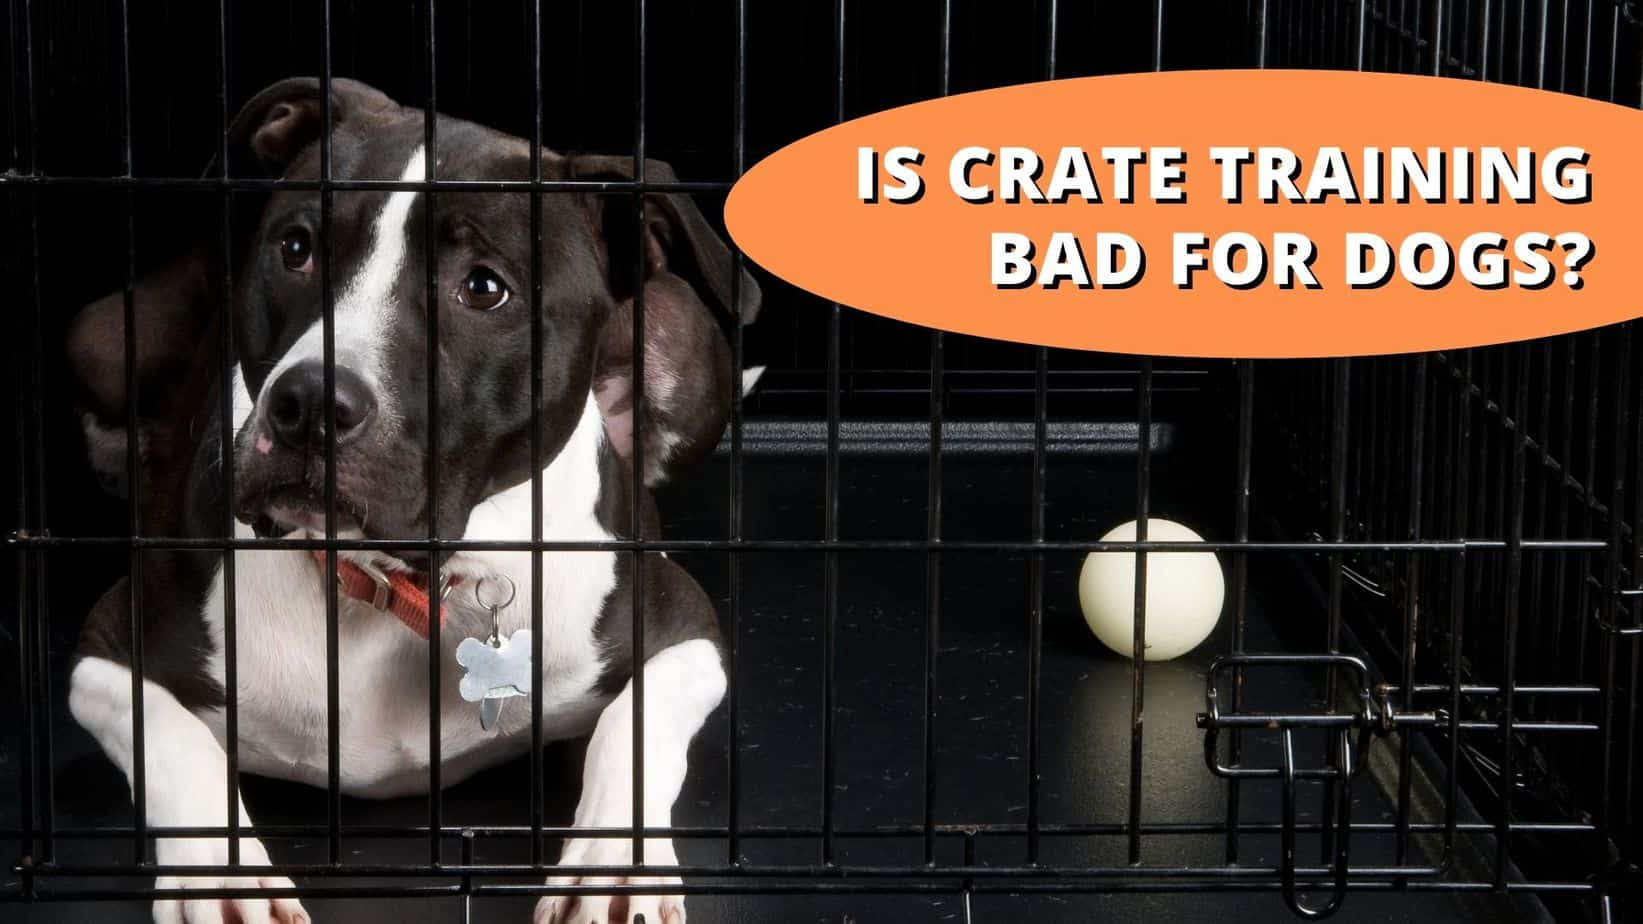 is crate training bad for dogs